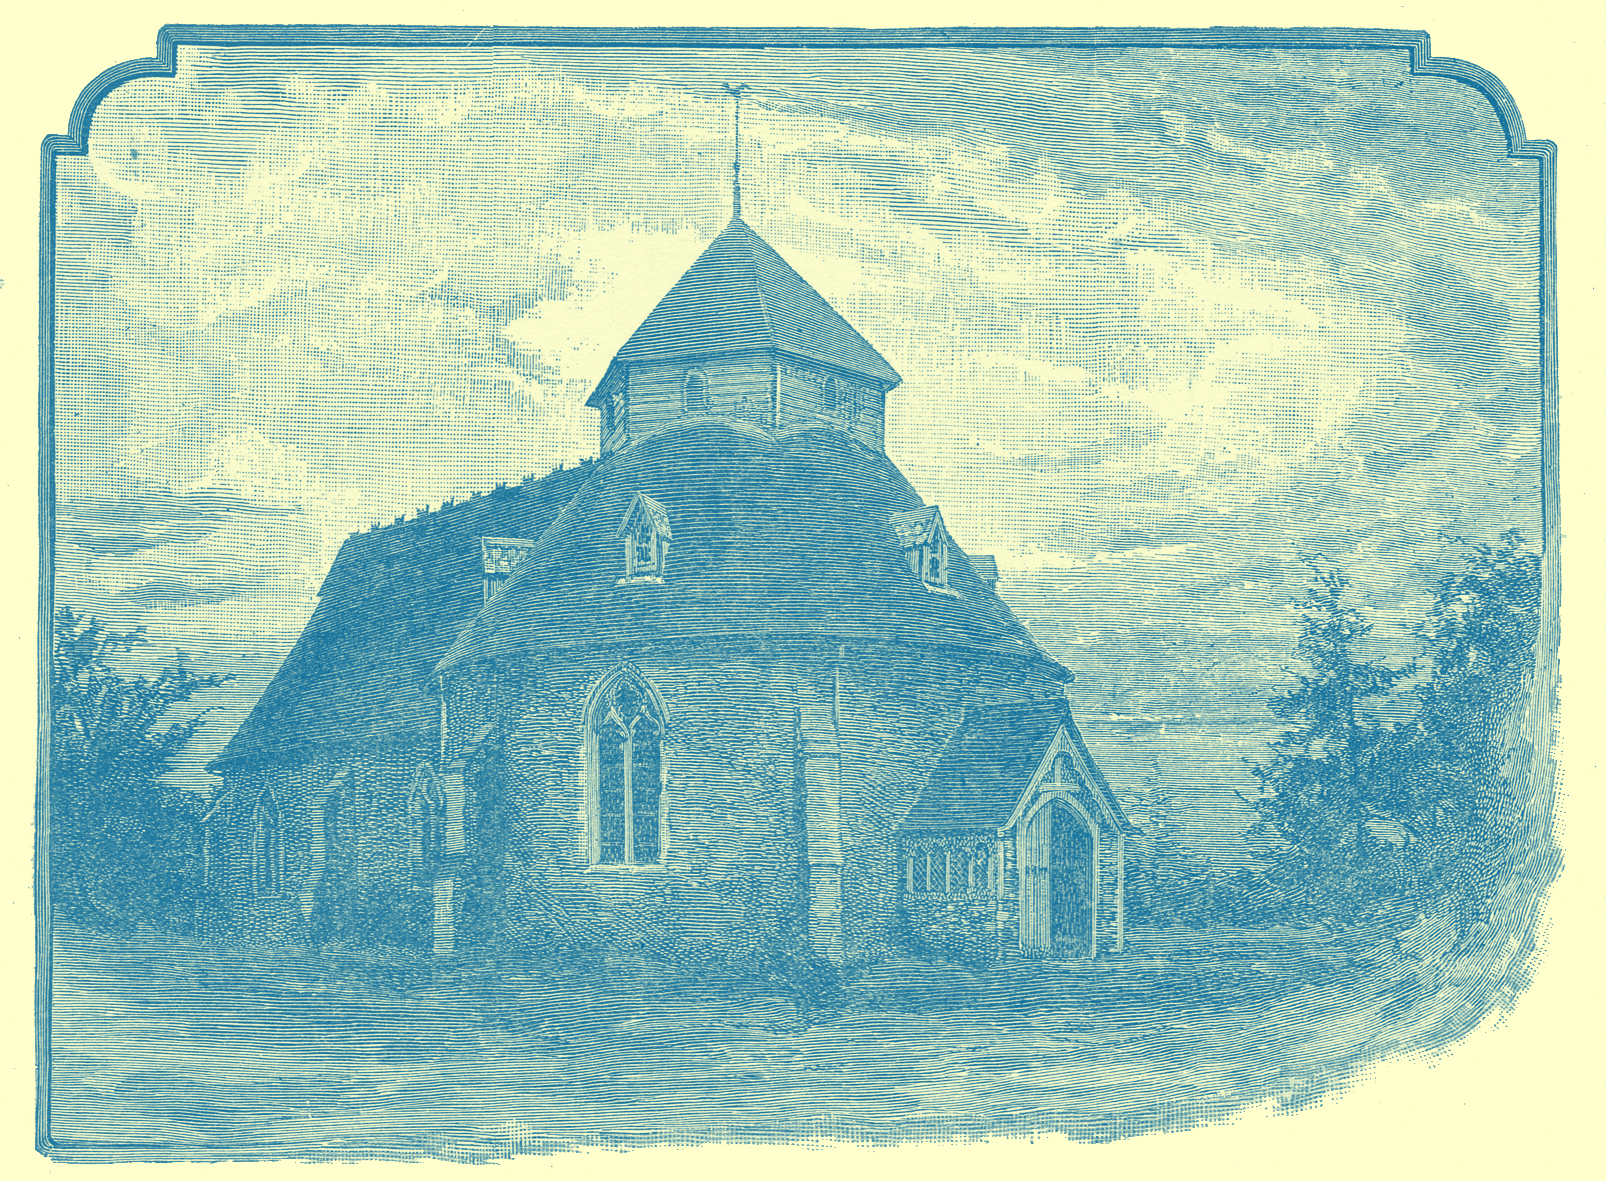 An Engraving of Little Maplestead Church, in Essex, England.  It has a rounded front portion and a hexagonal tower.